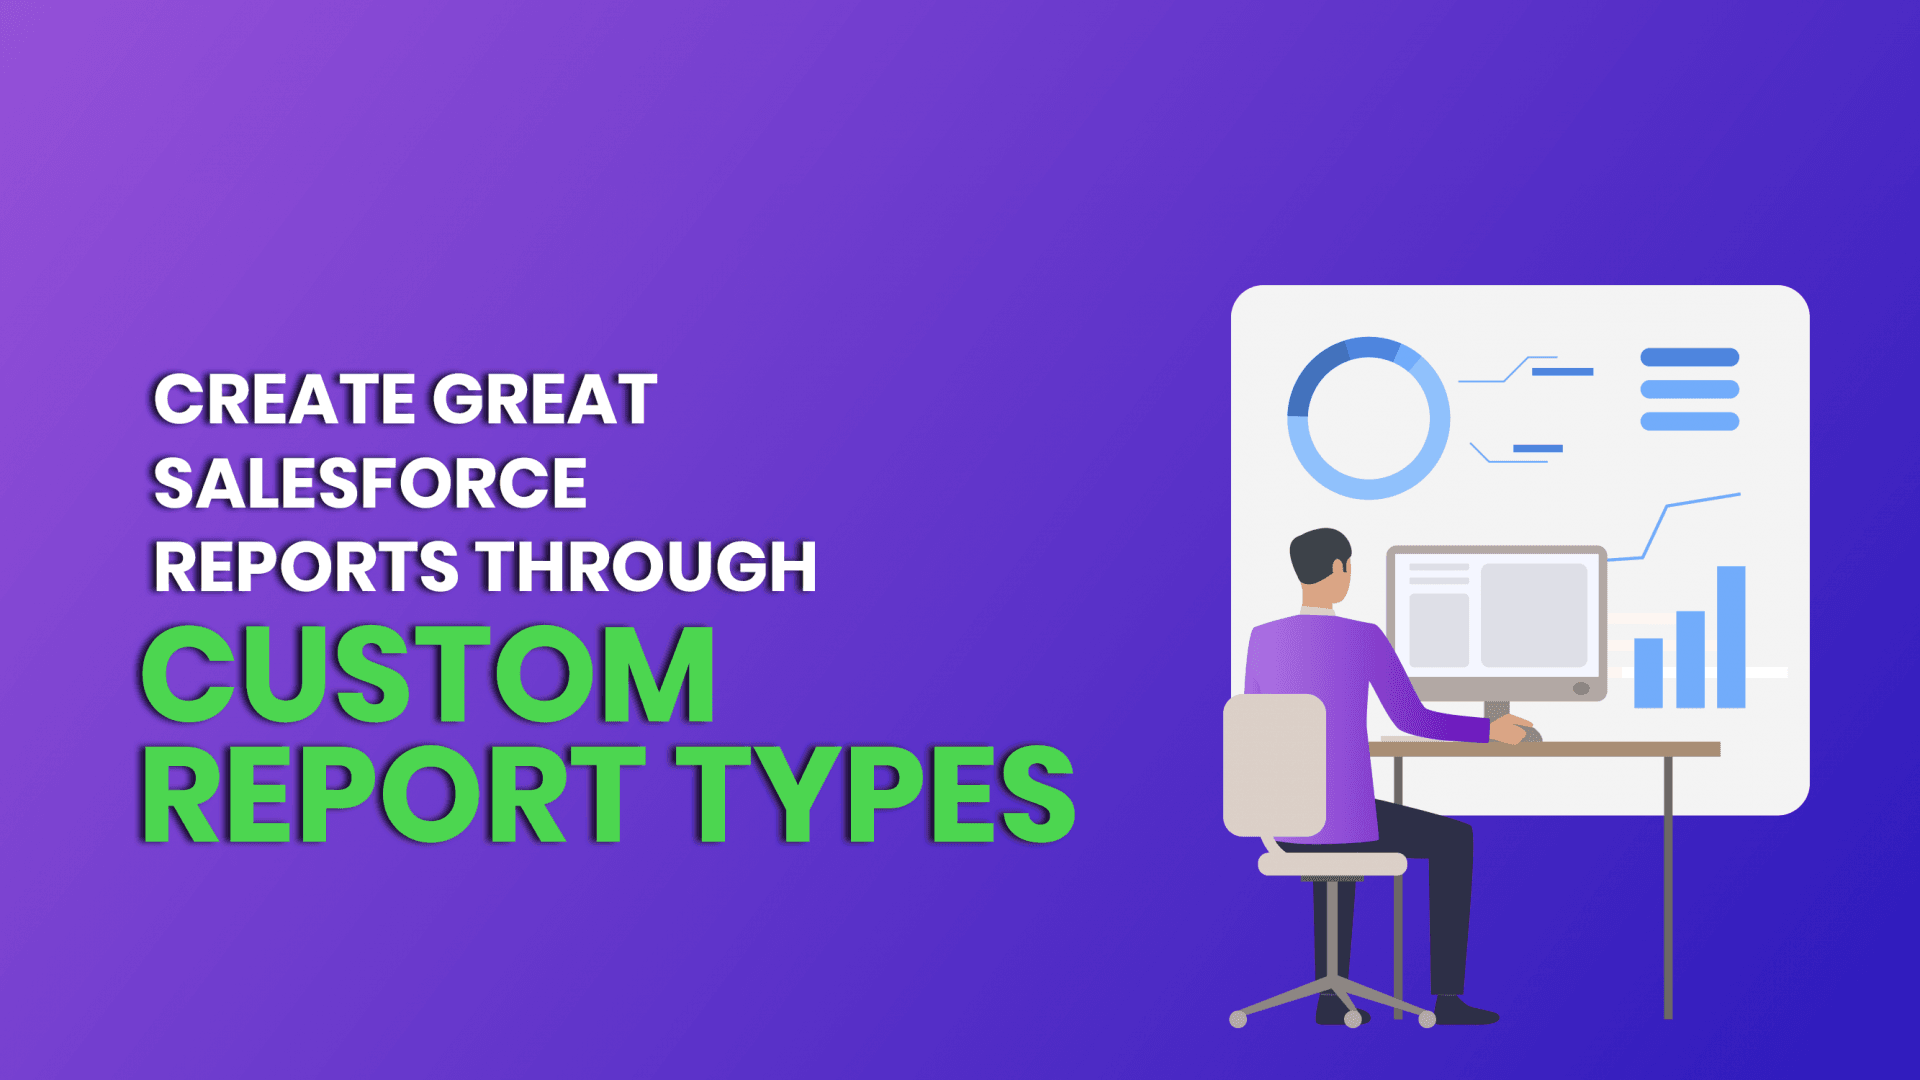 create great salesforce reports through custom report types